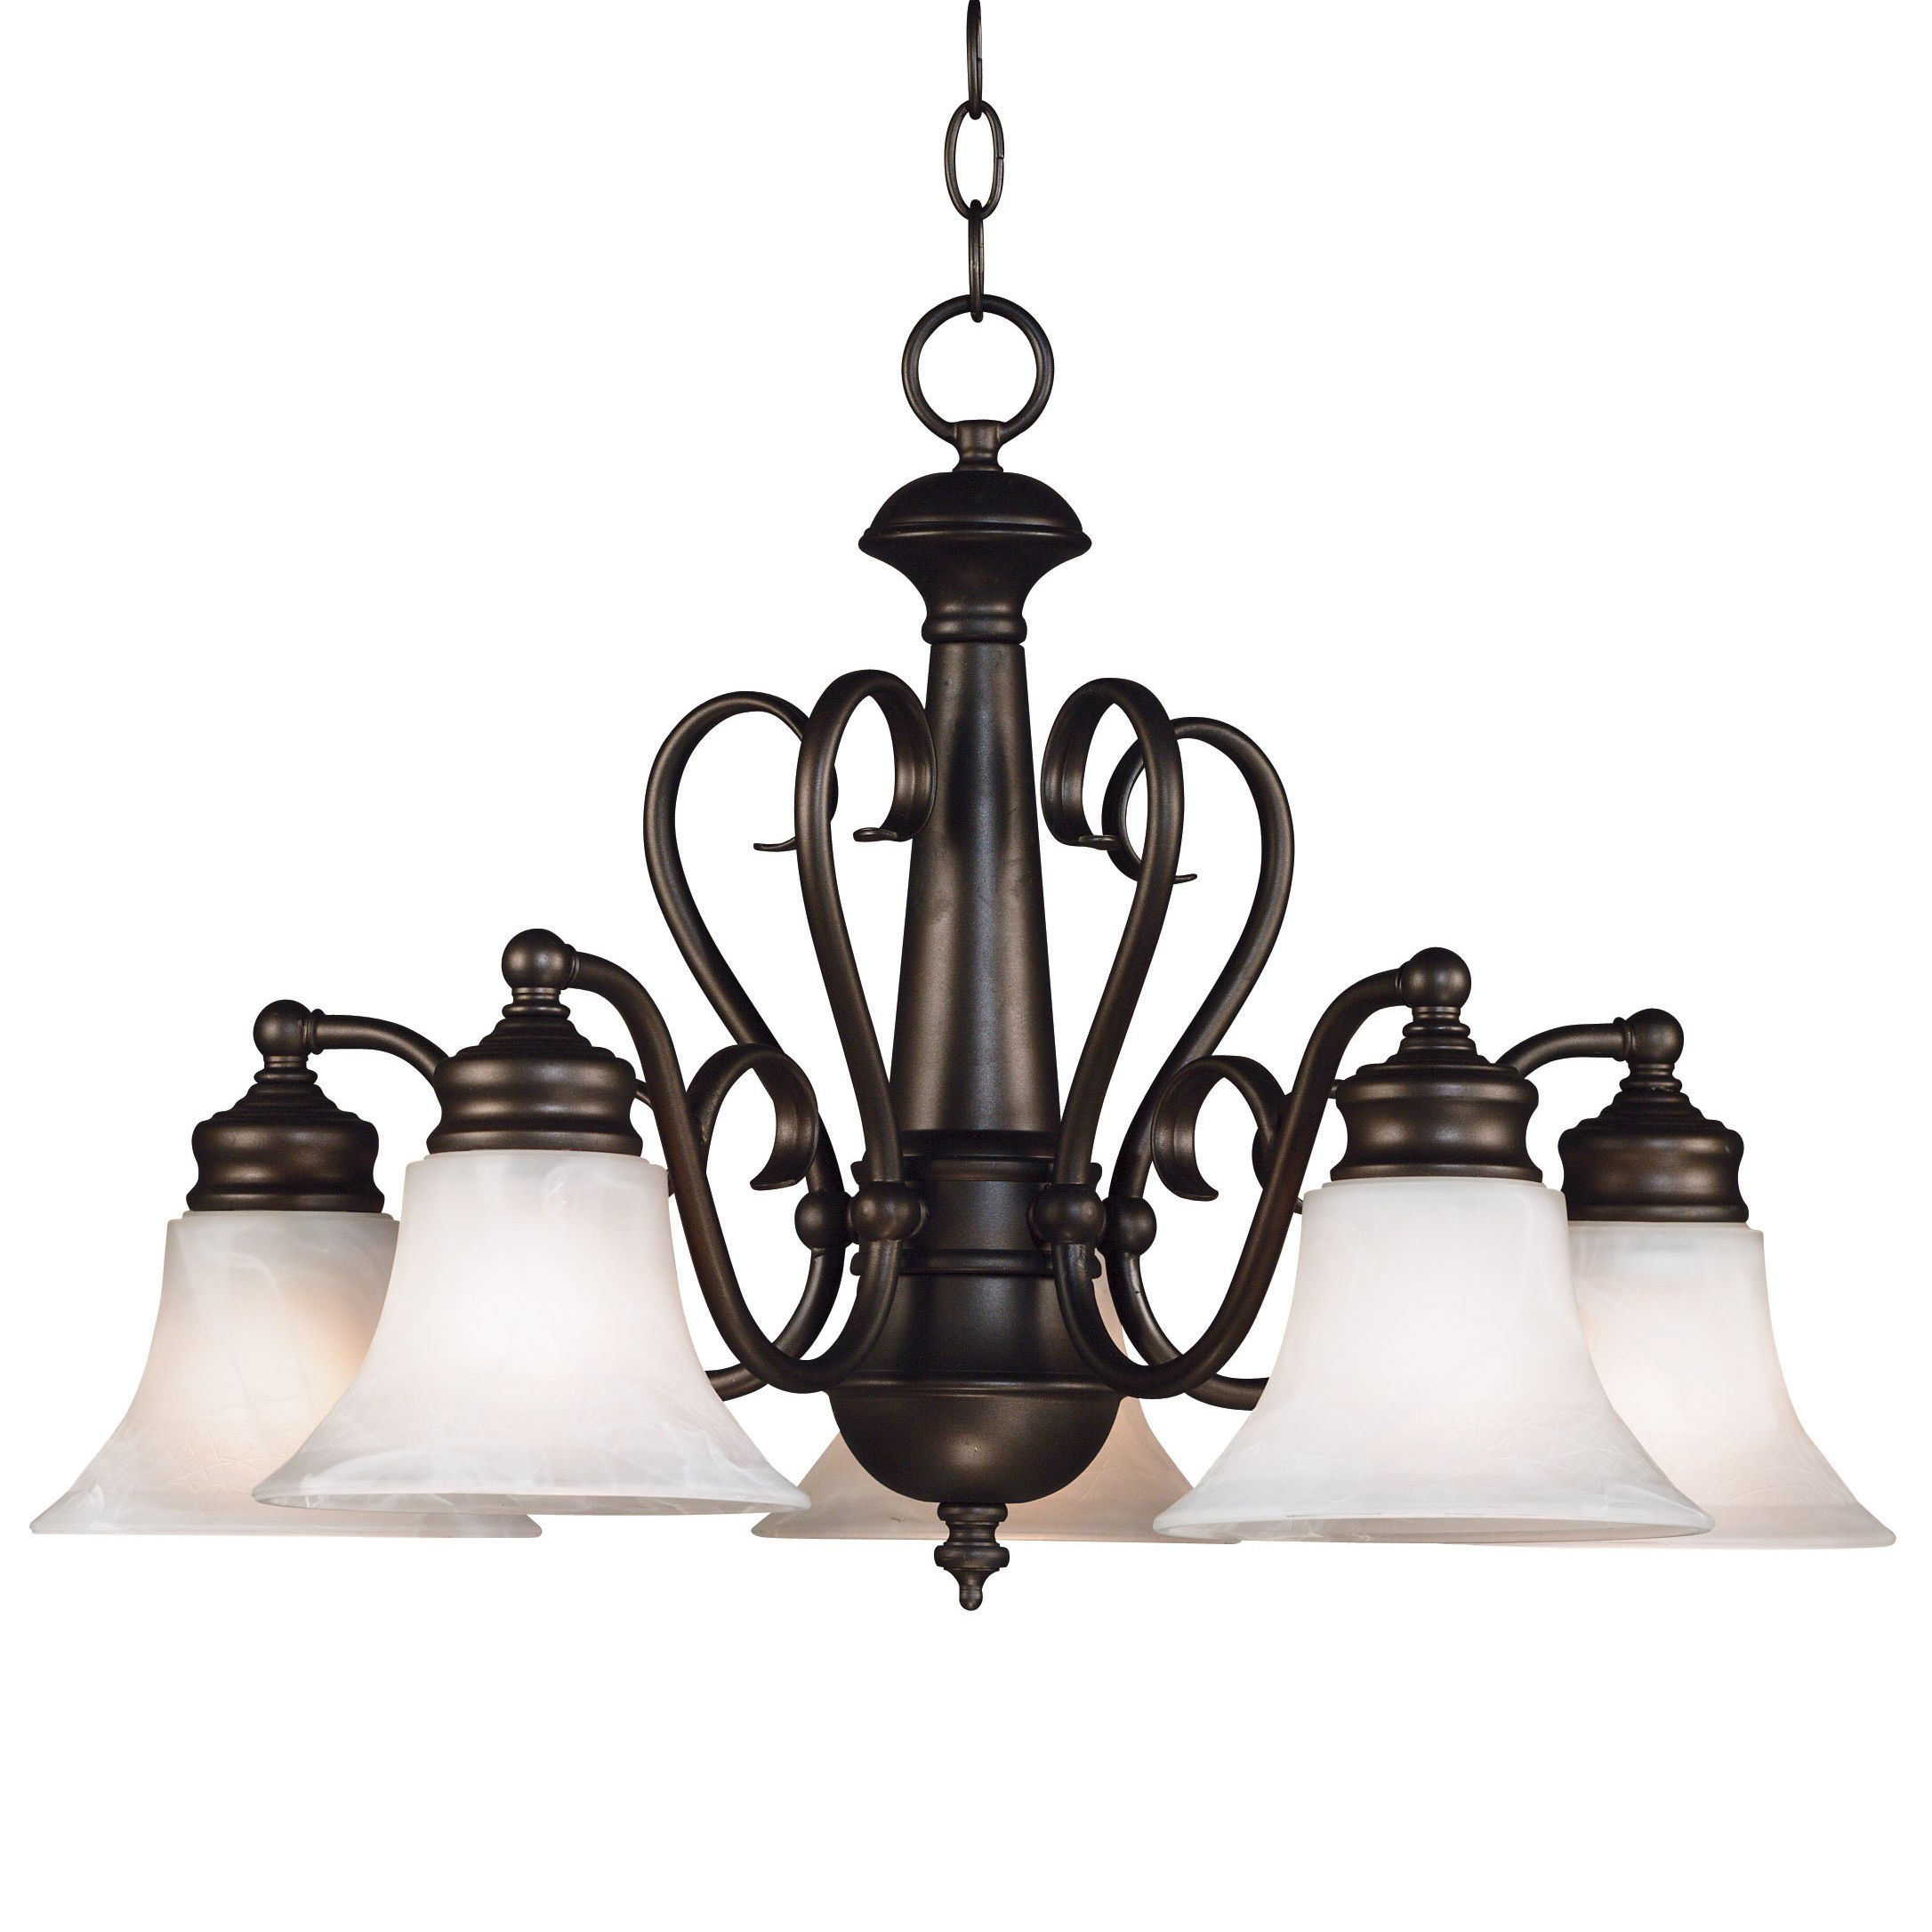 index antique products eugenia pedant crystal xiertekusa oversize all and lights bronze crystals chandeliers light chandelier h clara